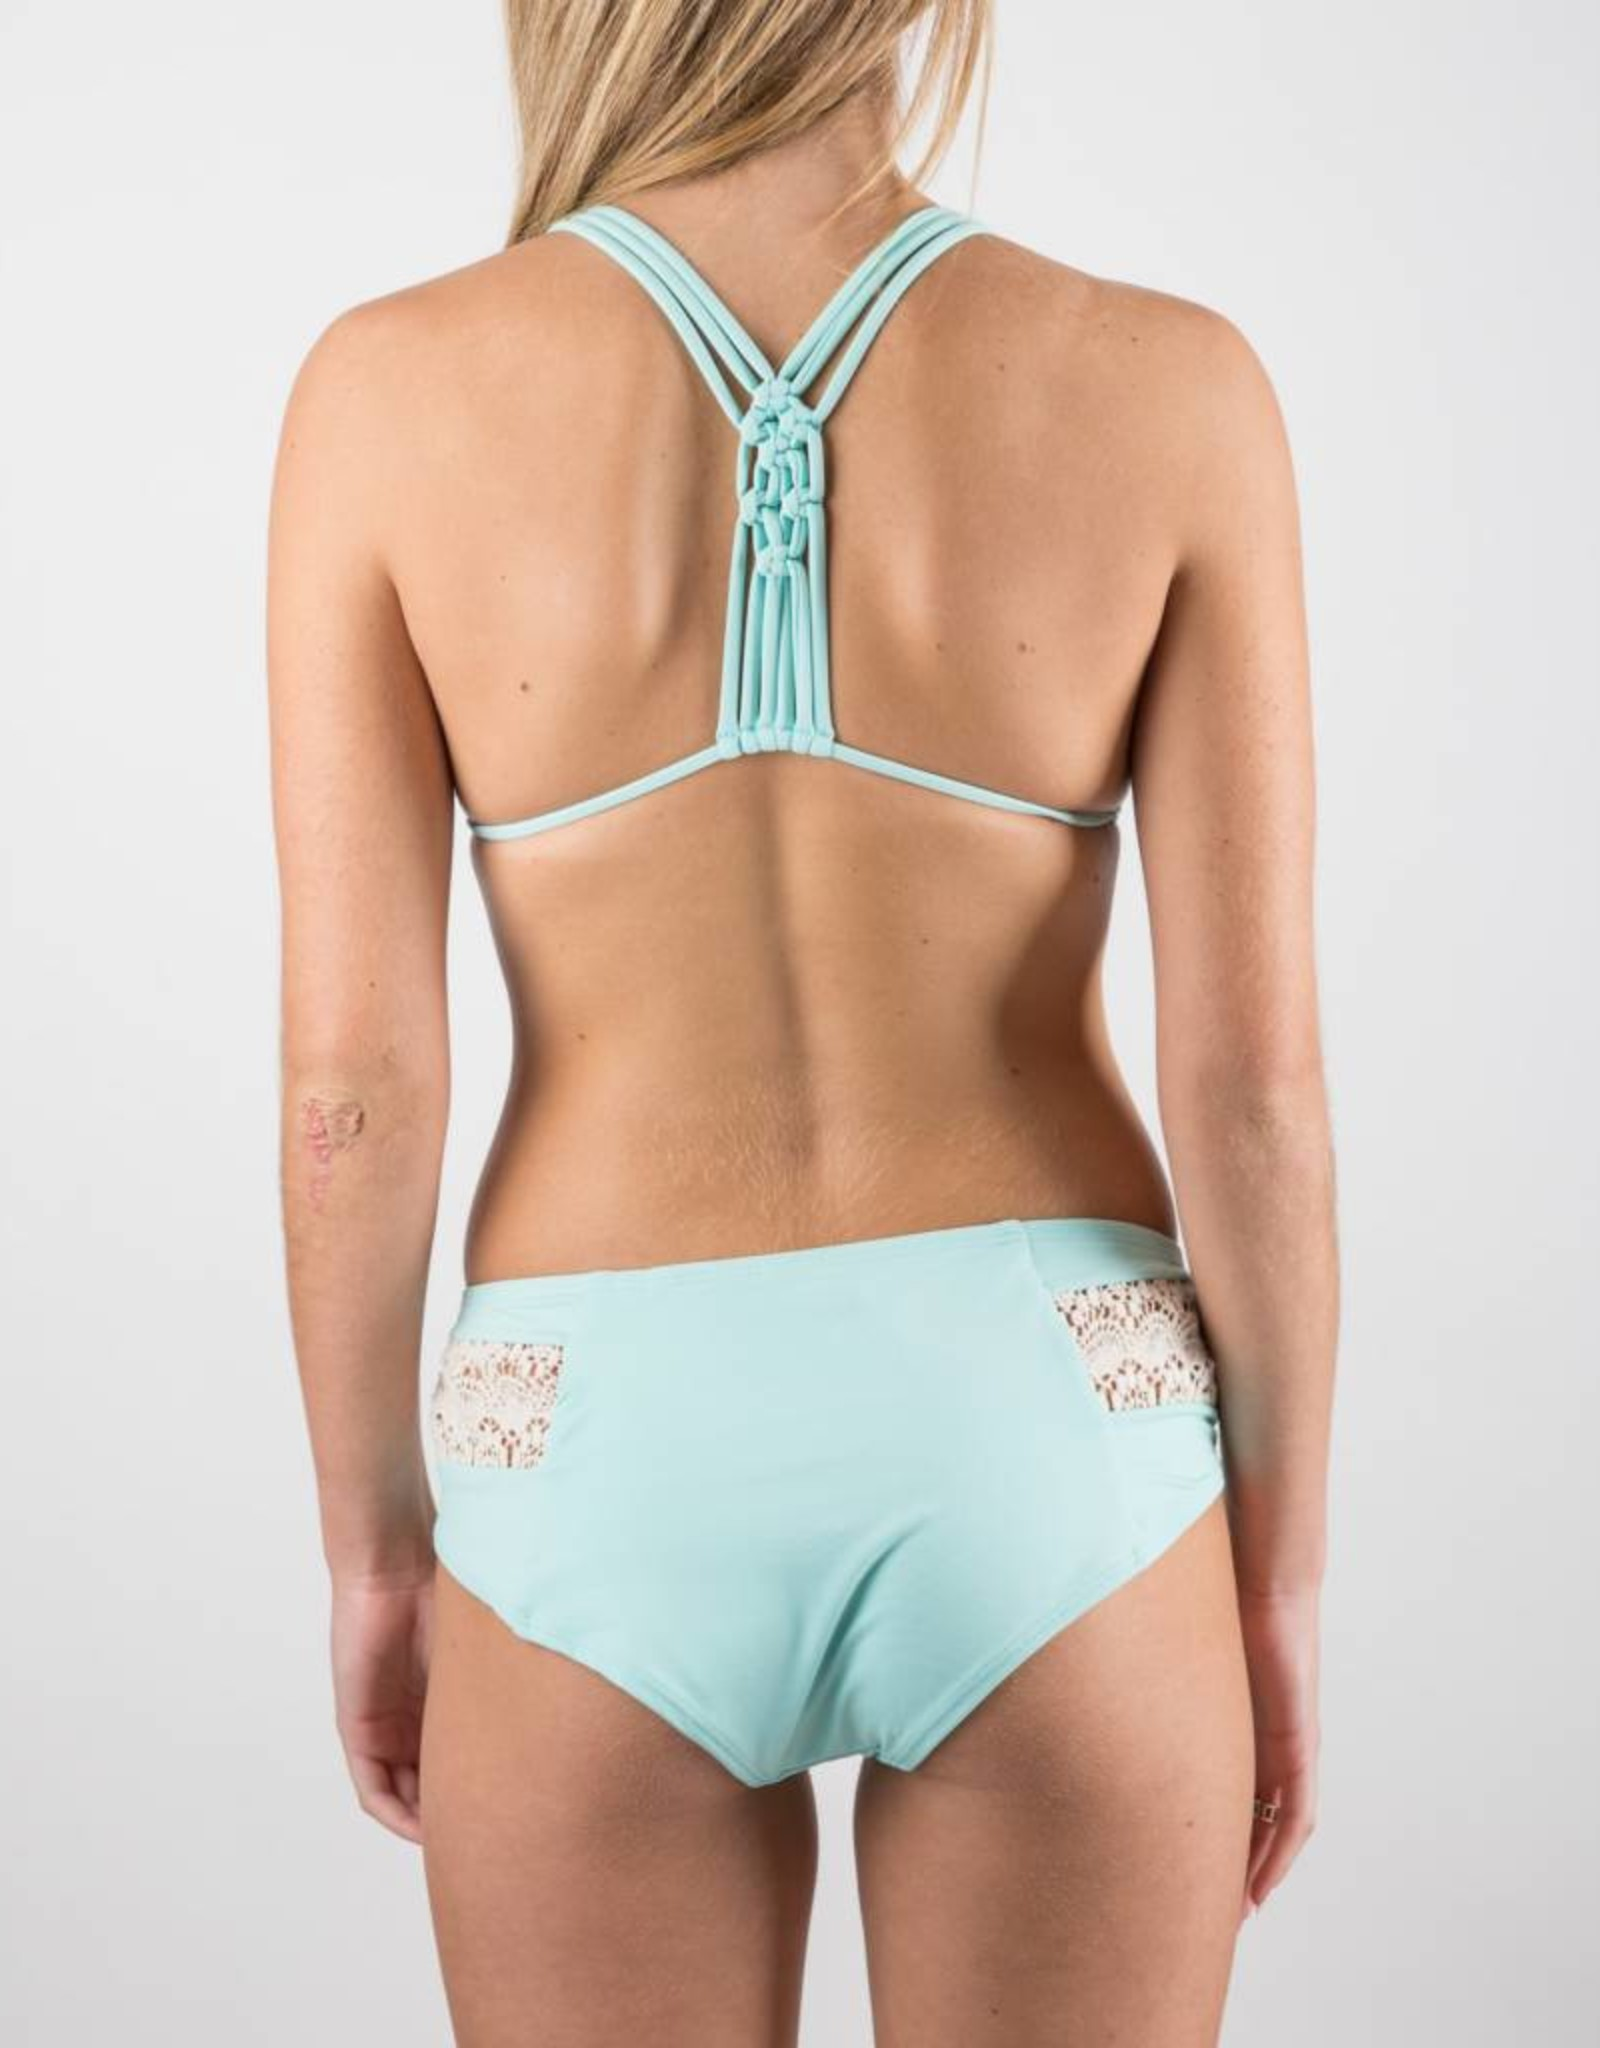 LSpace Solid Seaglass Sweet and Chic Bikini